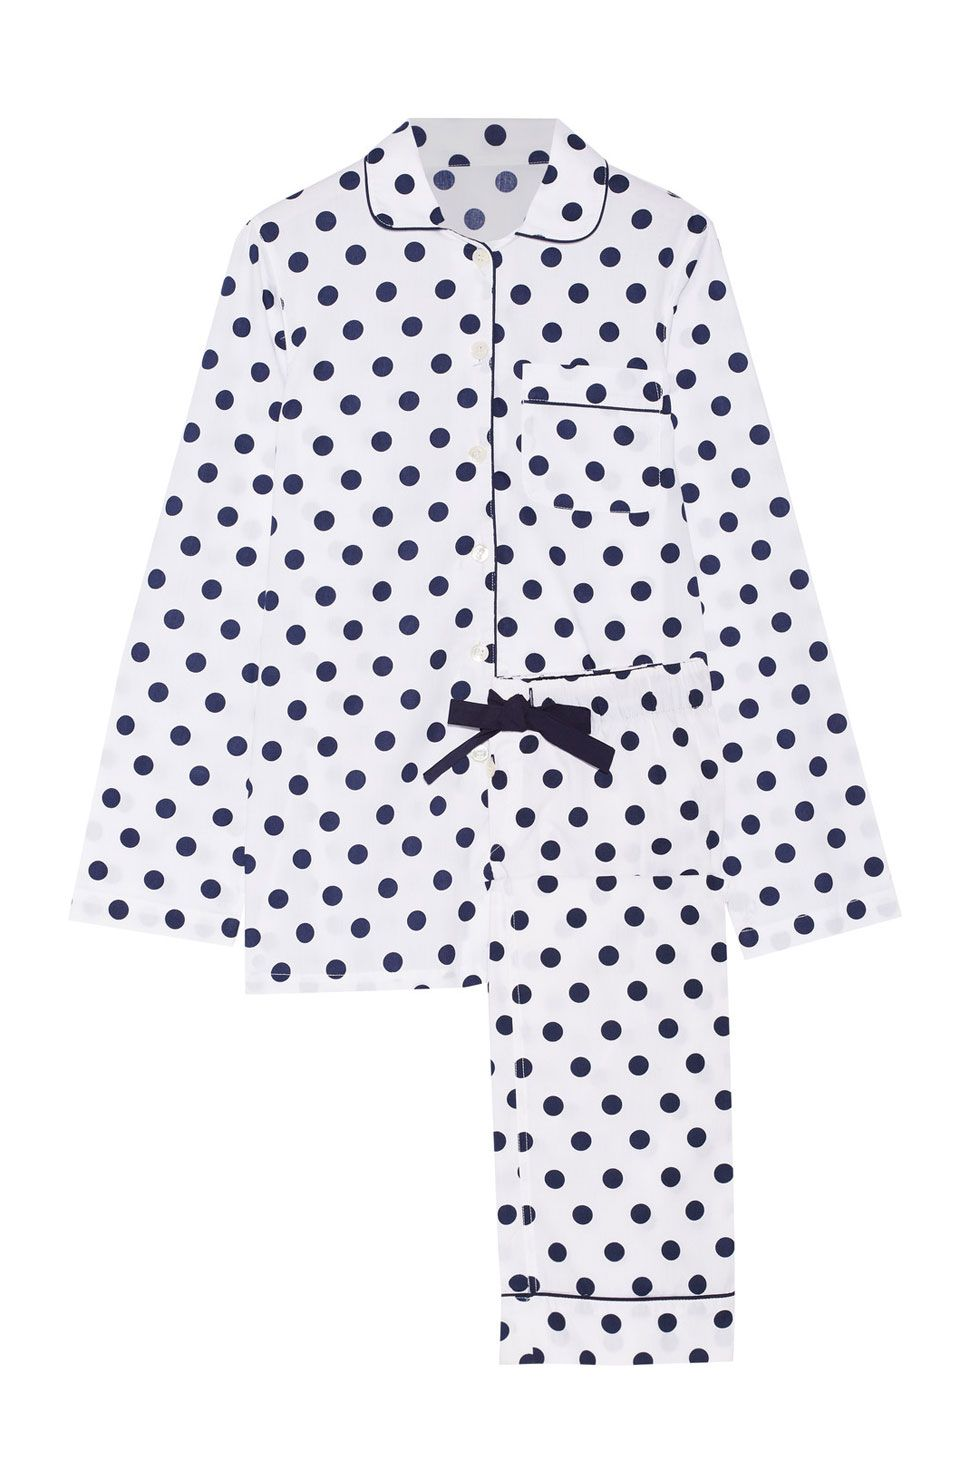 "<p>A mood-lifting polka-dot set that's on post-Black Friday sale *screams*. Swap out the pants for a pair of girlfriend jeans for a brunch date or a quick run to the grocery store. </p>  <p><strong data-redactor-tag=""strong"" data-verified=""redactor"">Three J NYC Polka-Dot Cotton Poplin Pajama Set, $91; <a href=""https://www.net-a-porter.com/us/en/product/738181/Three_J_NYC/jamie-polka-dot-cotton-poplin-pajama-set"" target=""_blank"" data-tracking-id=""recirc-text-link"">net-a-porter.com</a>.</strong></p>"